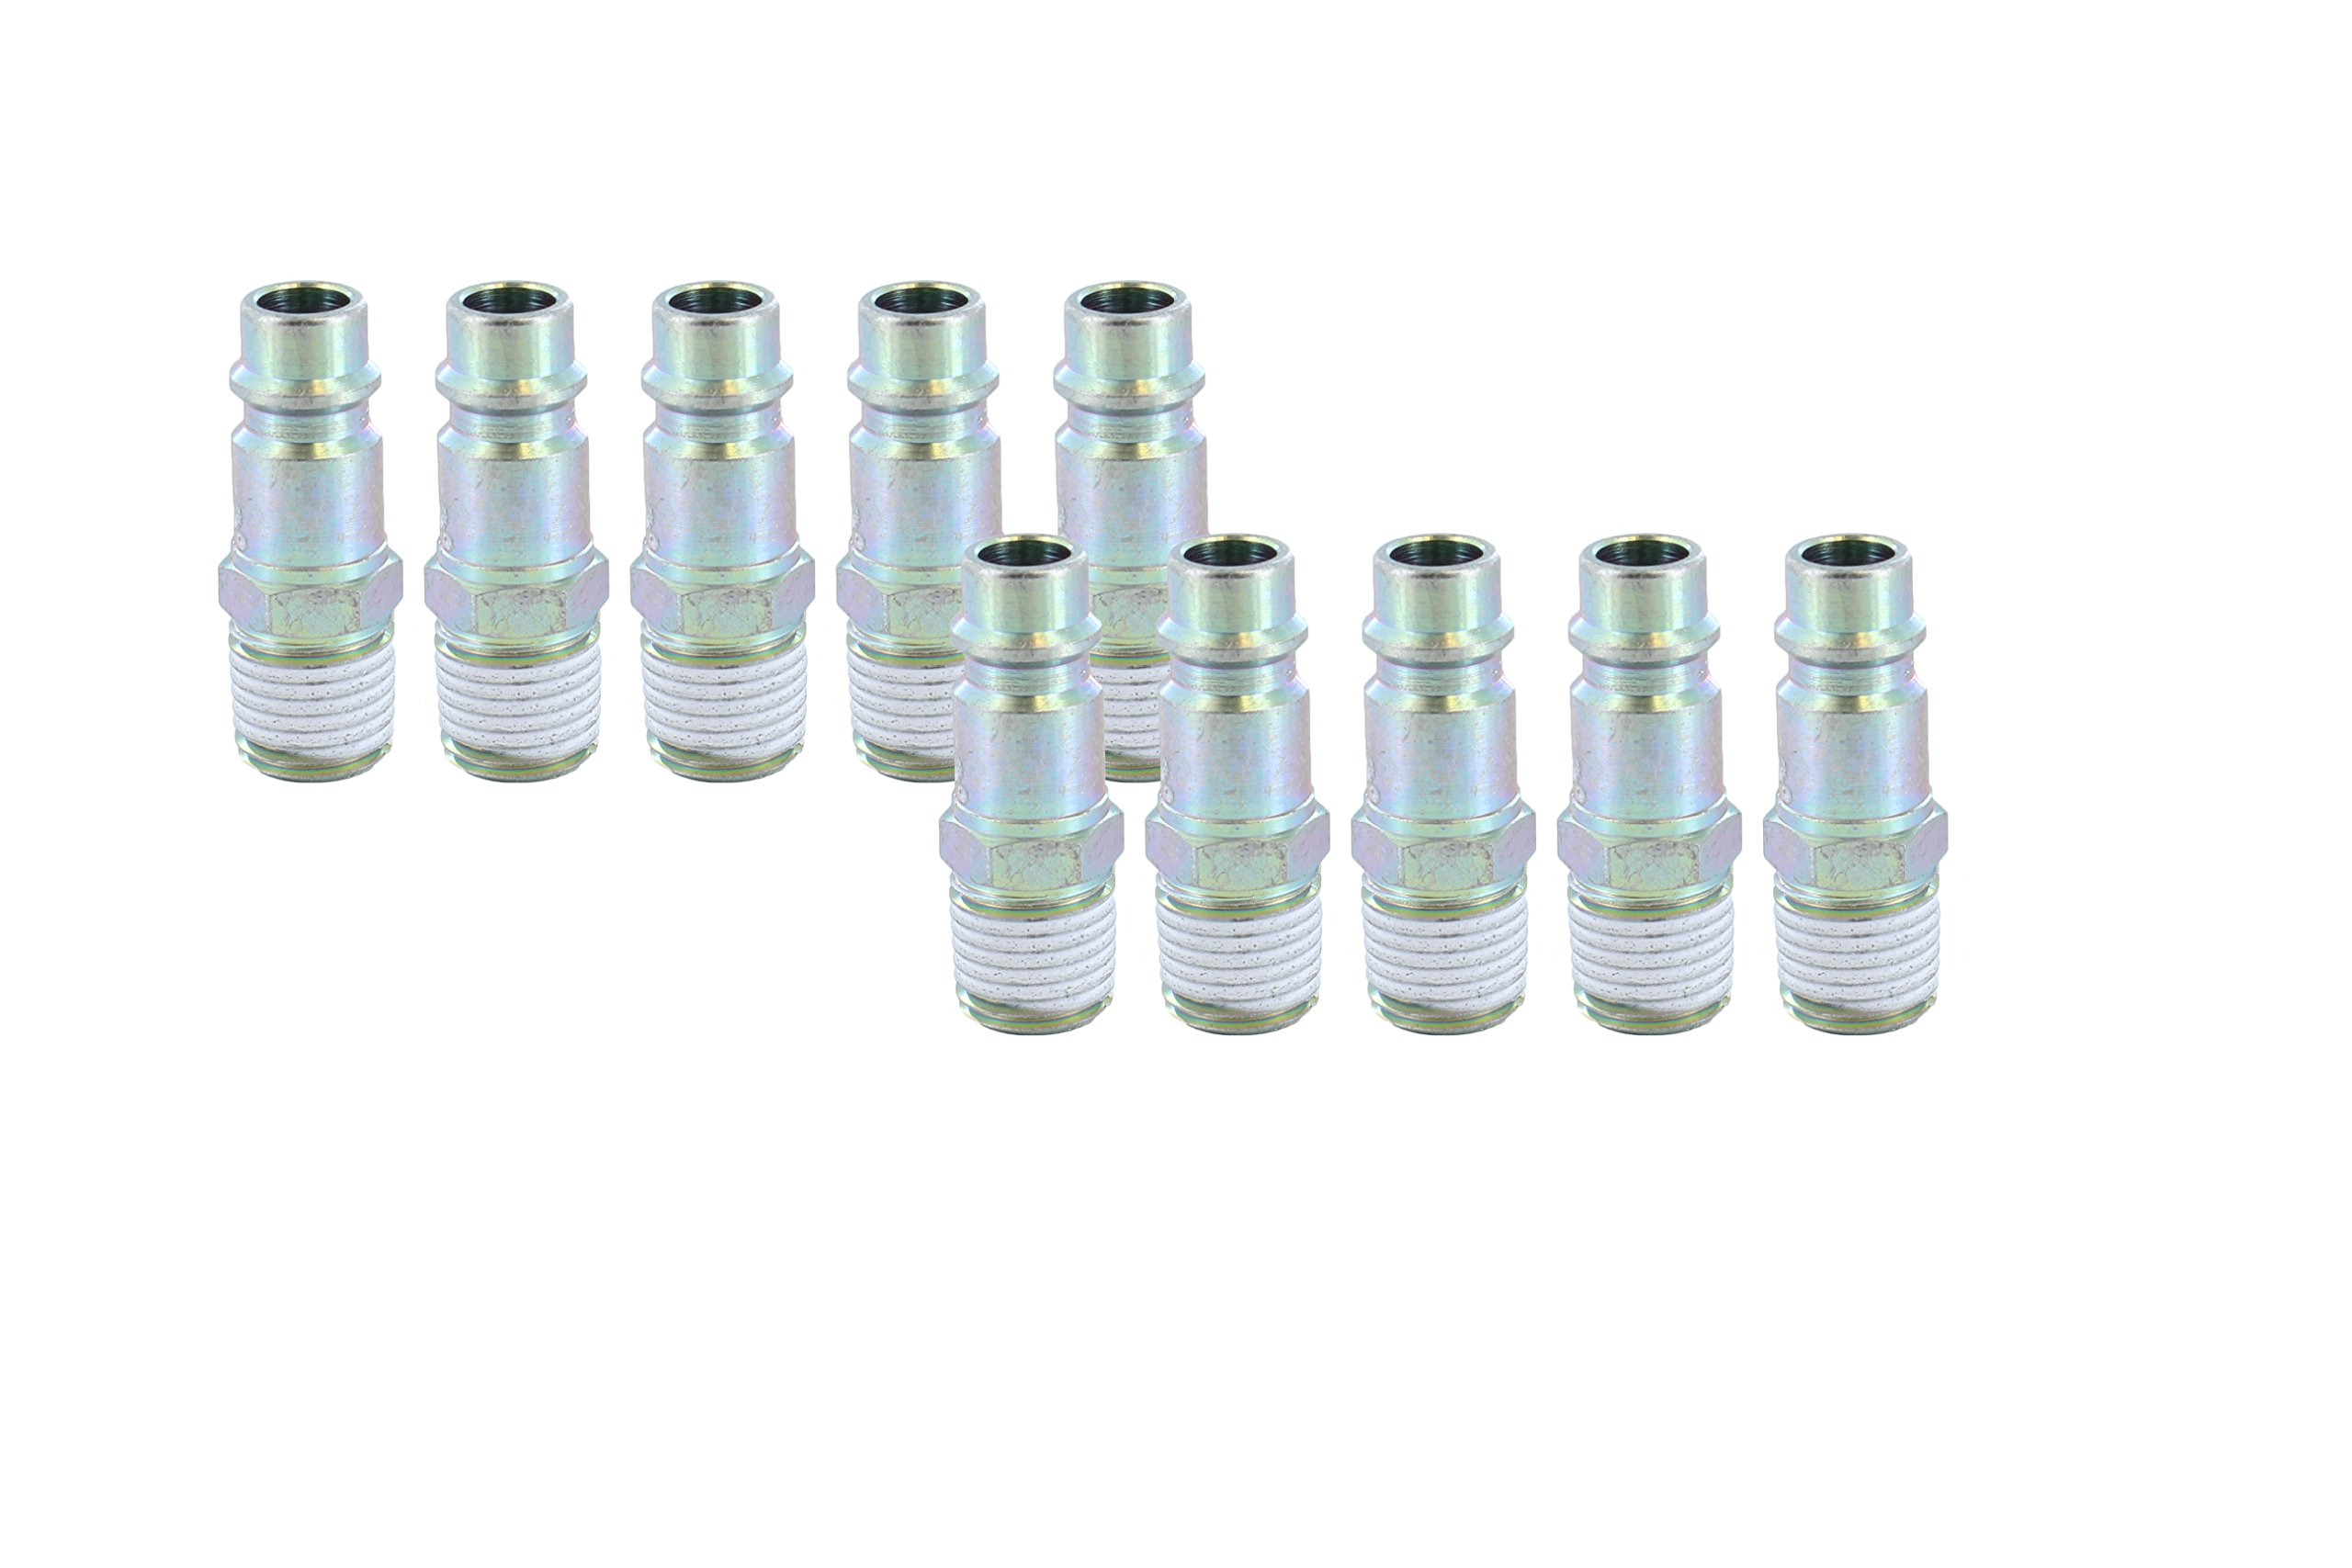 "Prevost ERP 076251 (10 Pack) 1/4"" Thread Male NPT 3/8"" Body Size High Flow Safety Air Plug"